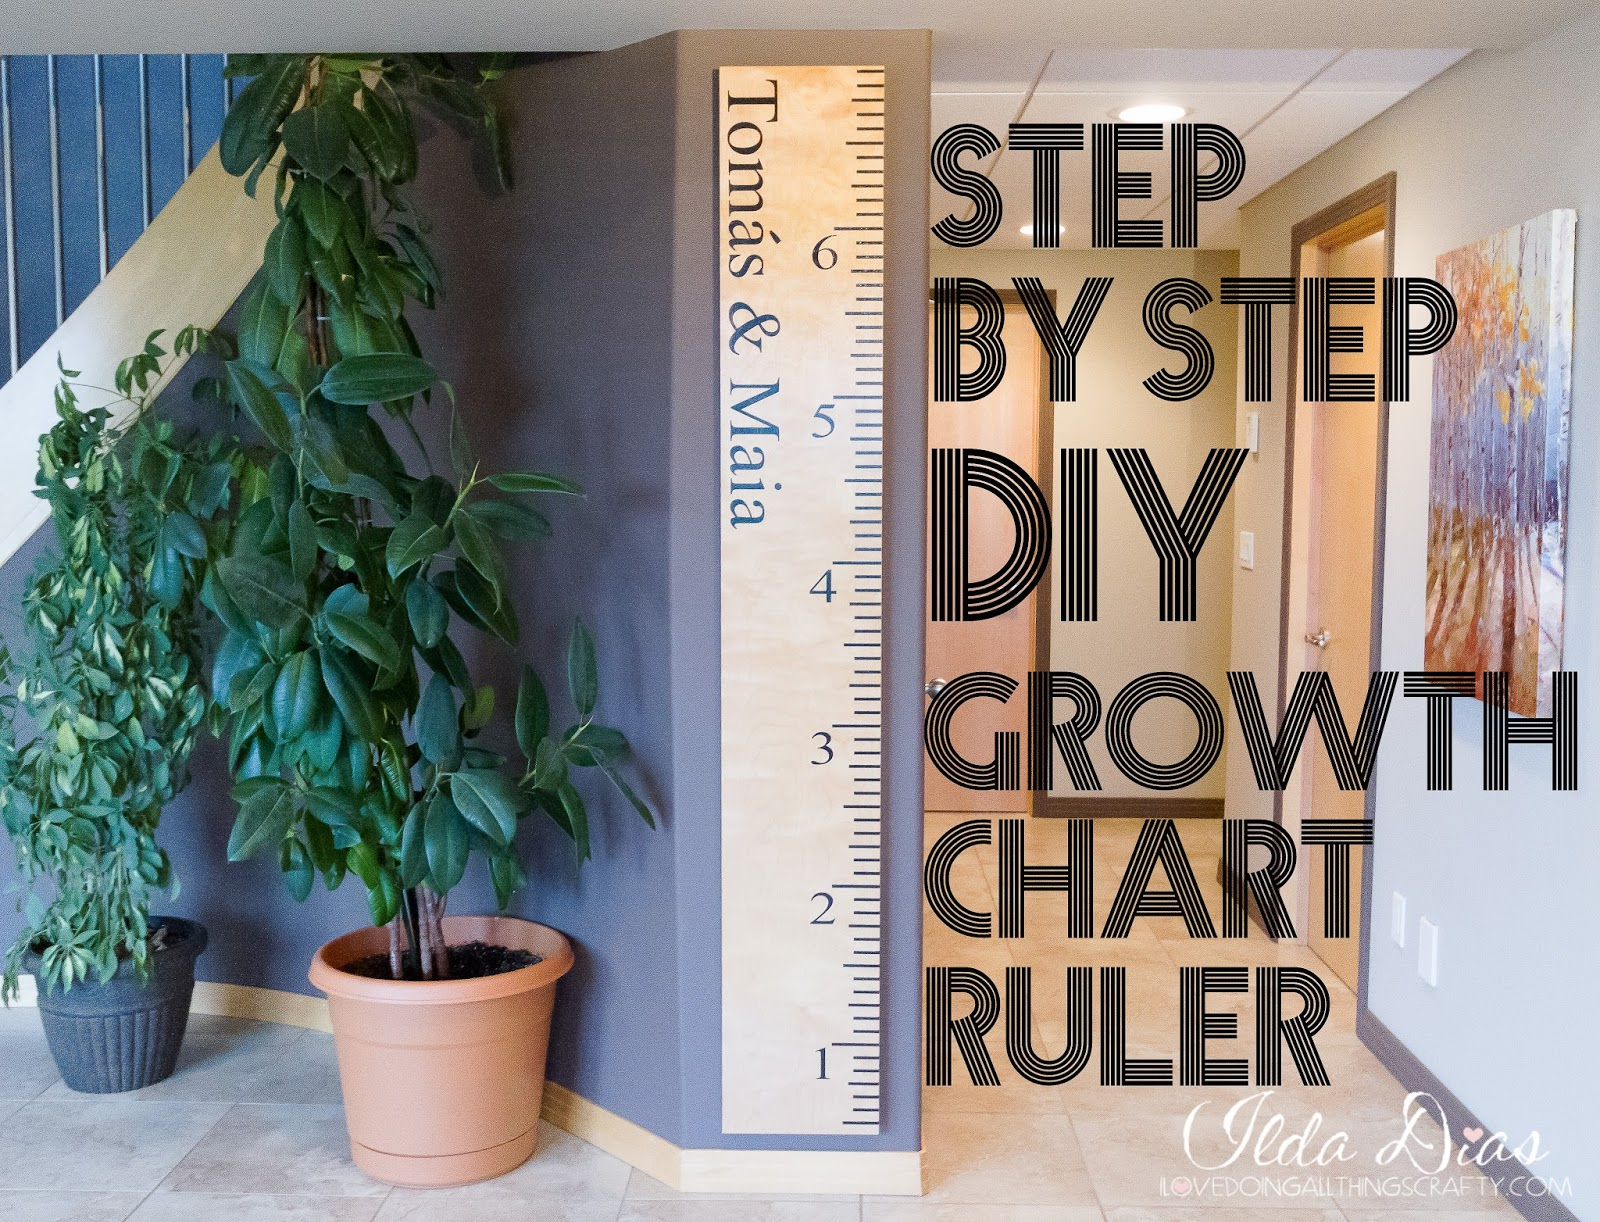 I love doing all things crafty diy growth chart ruler video diy growth chart ruler video tutorial nvjuhfo Images